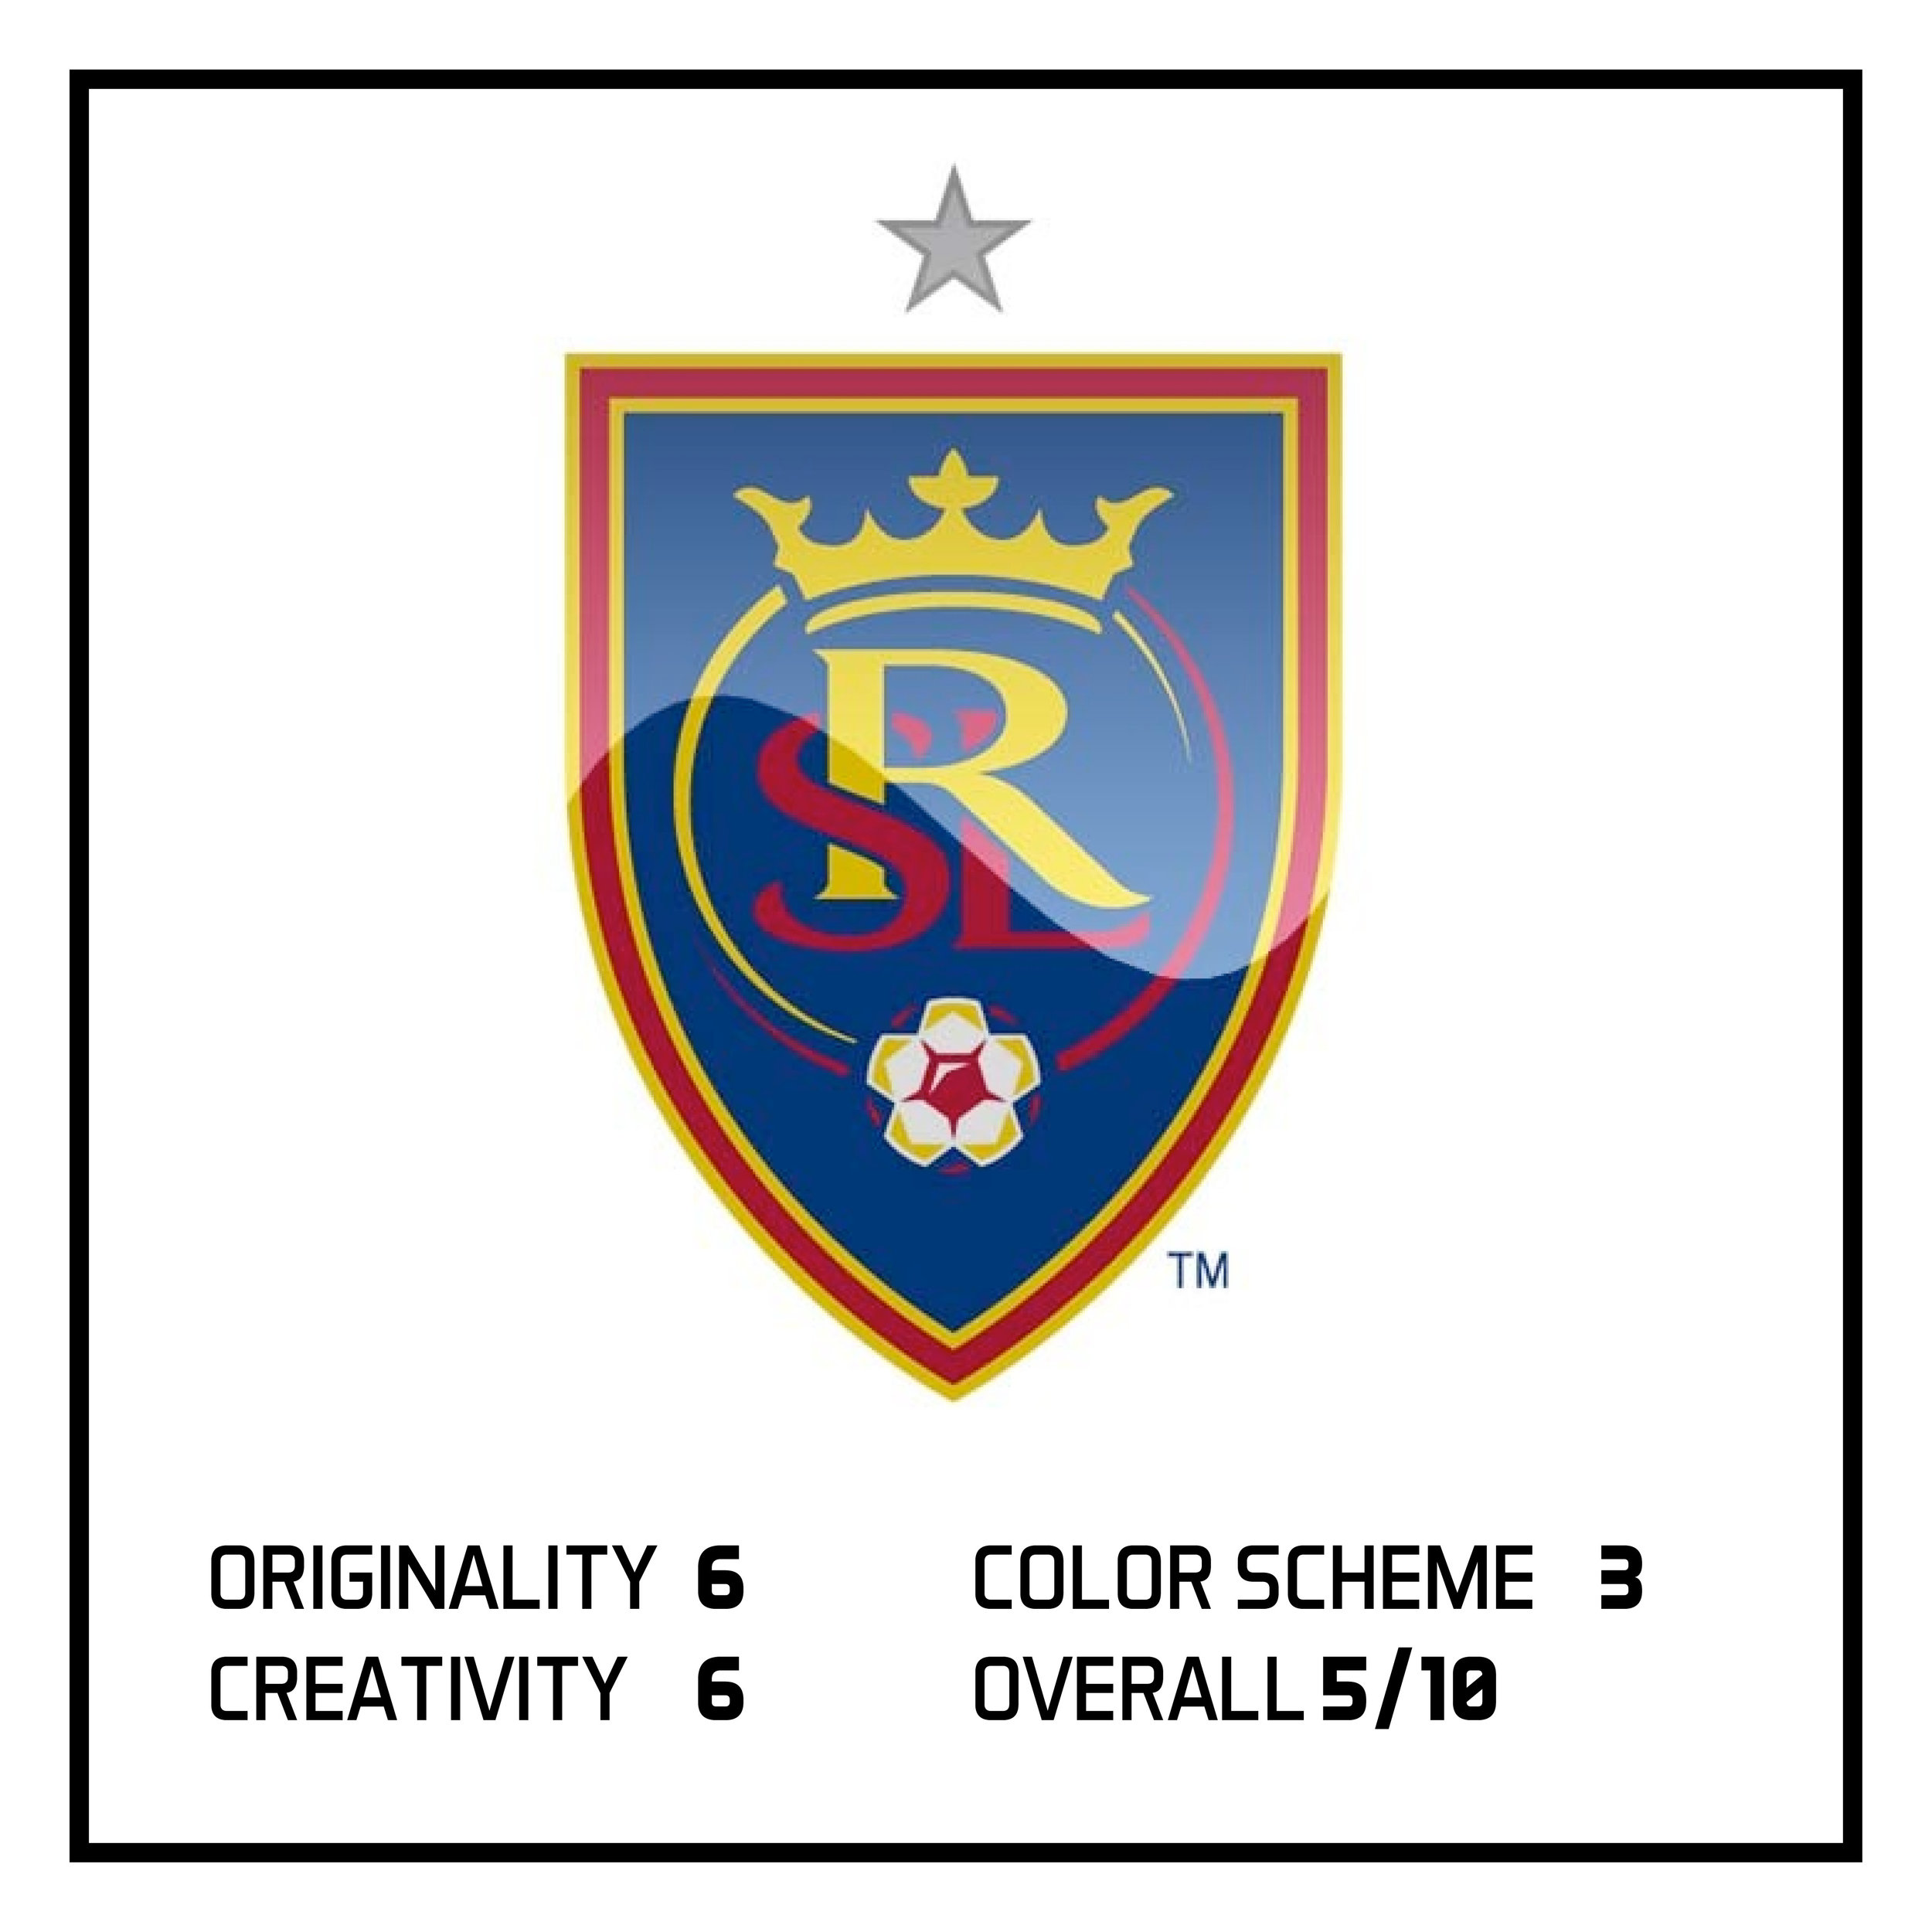 In Monday's post, I ranked Real Salt Lake as the bottom 5 logos in the MLS.  View here